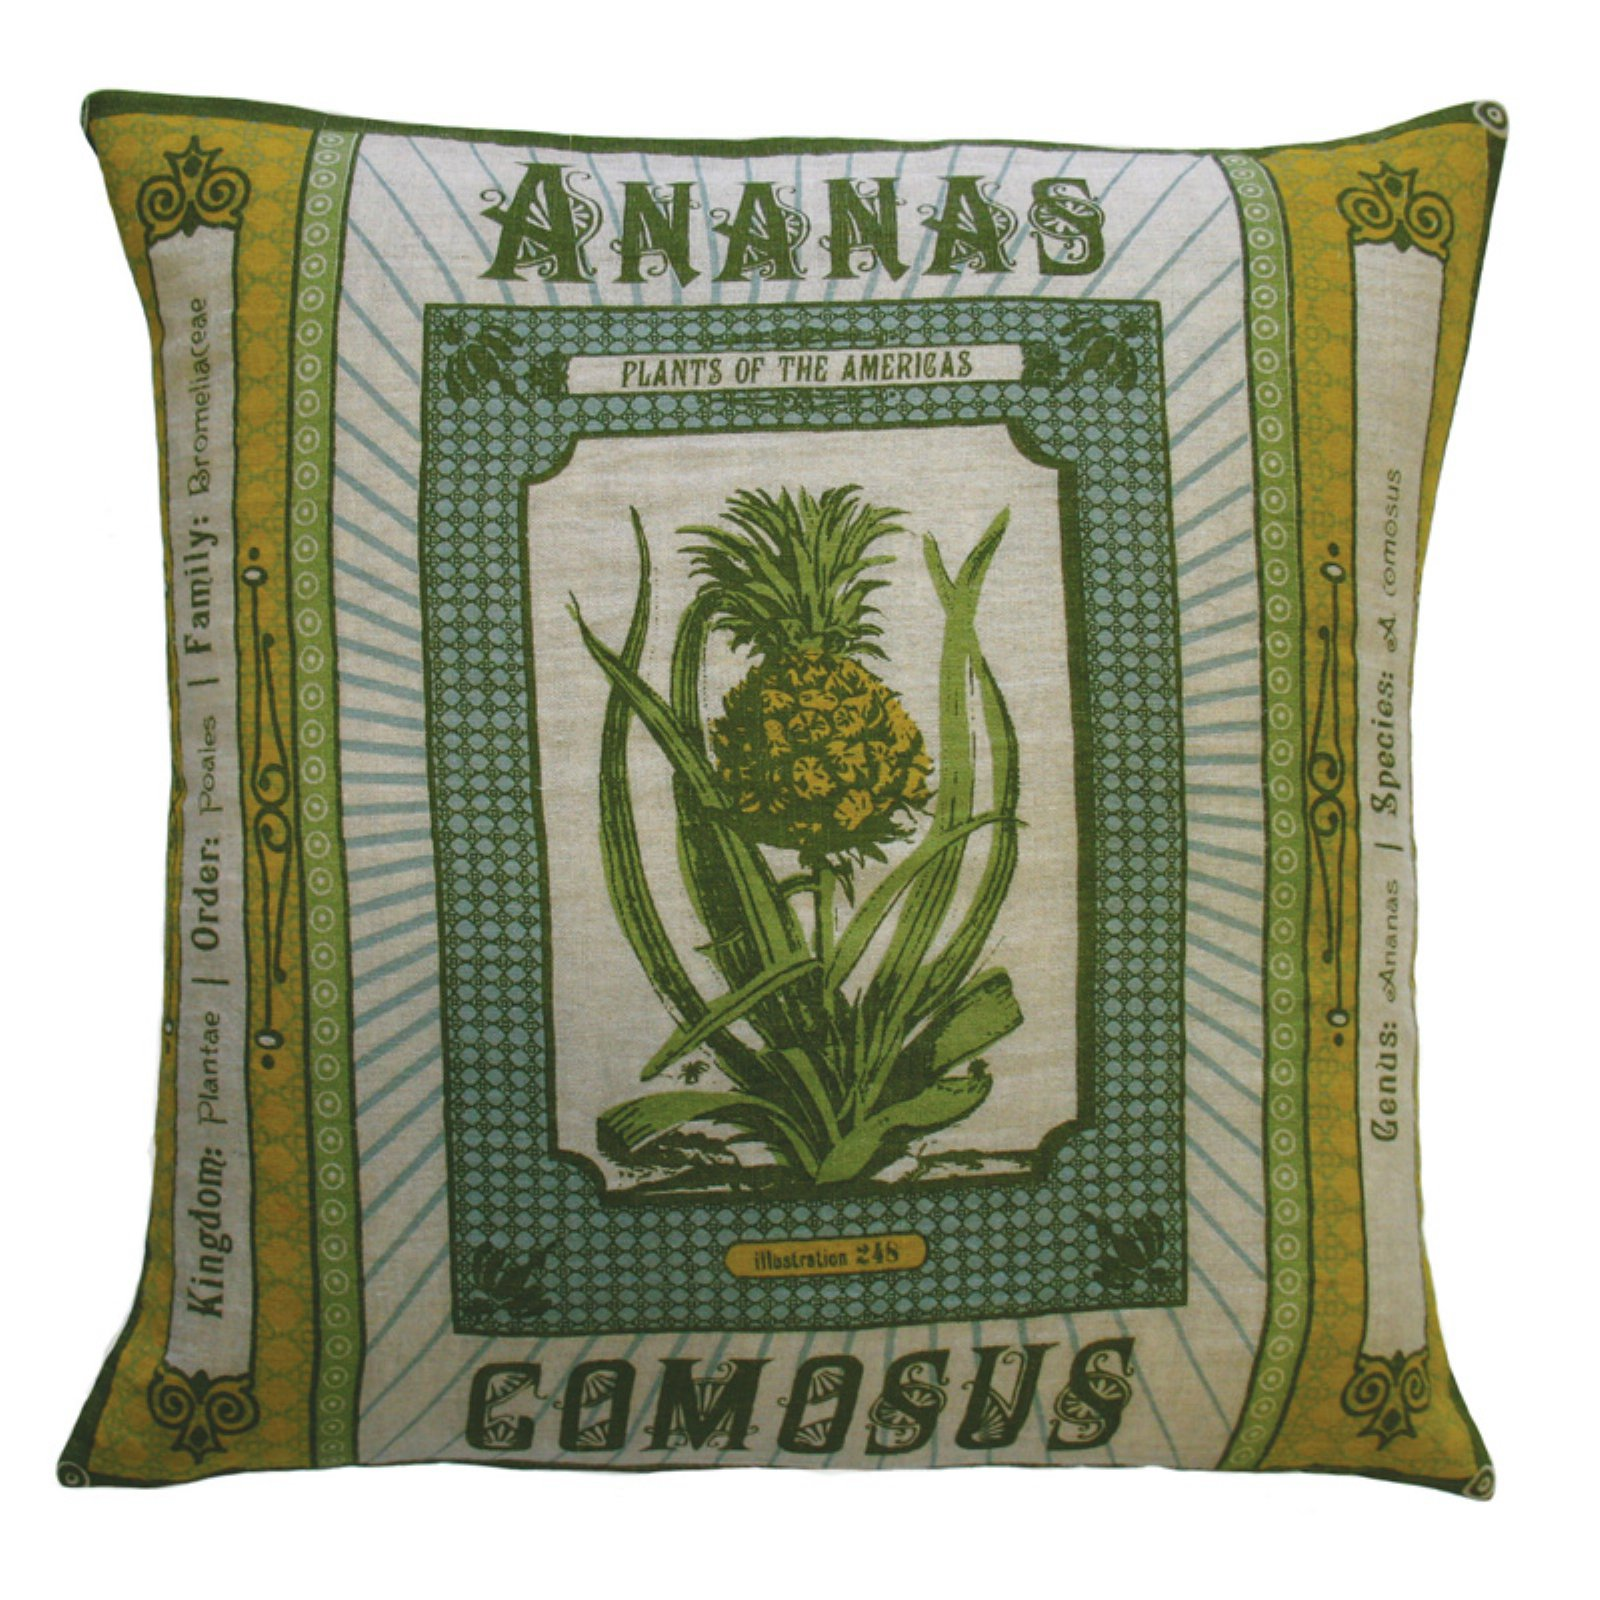 Koko Company Botanica Ananas Comosus Decorative Pillow